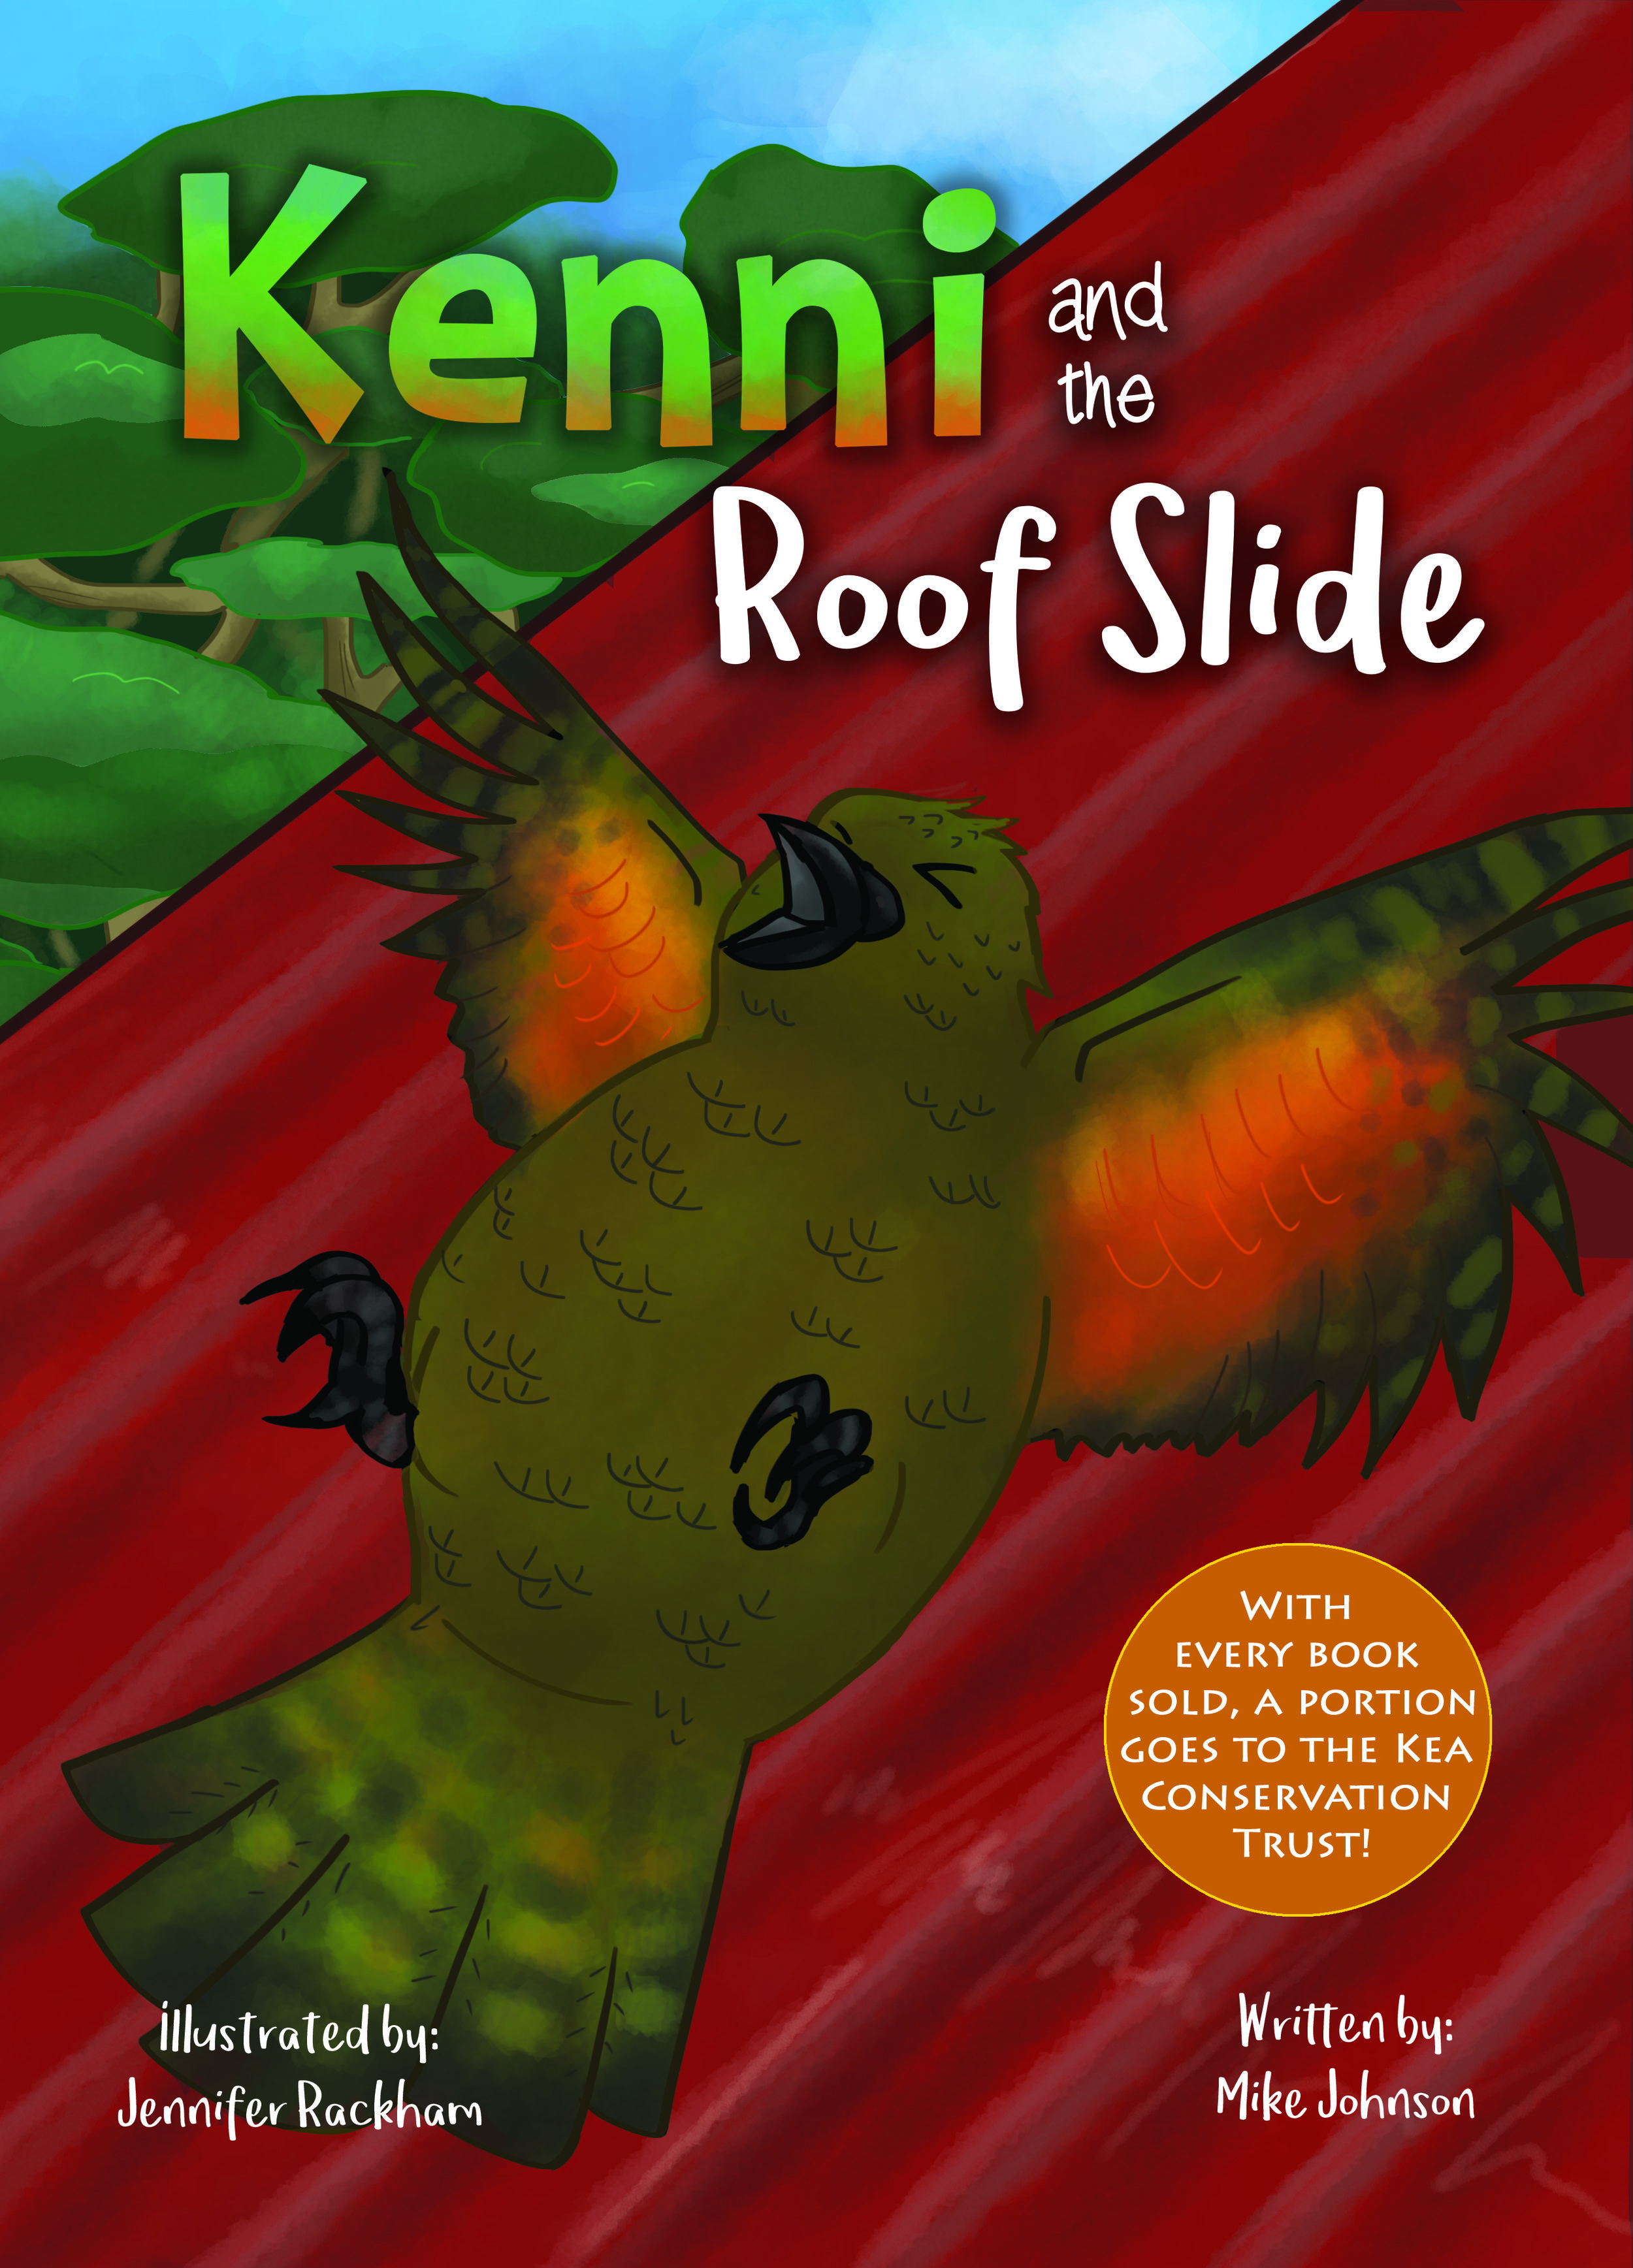 Kenni and the Roof Slide  , a delightful children's book about a cheeky Kea: Kenni, and his adventures.